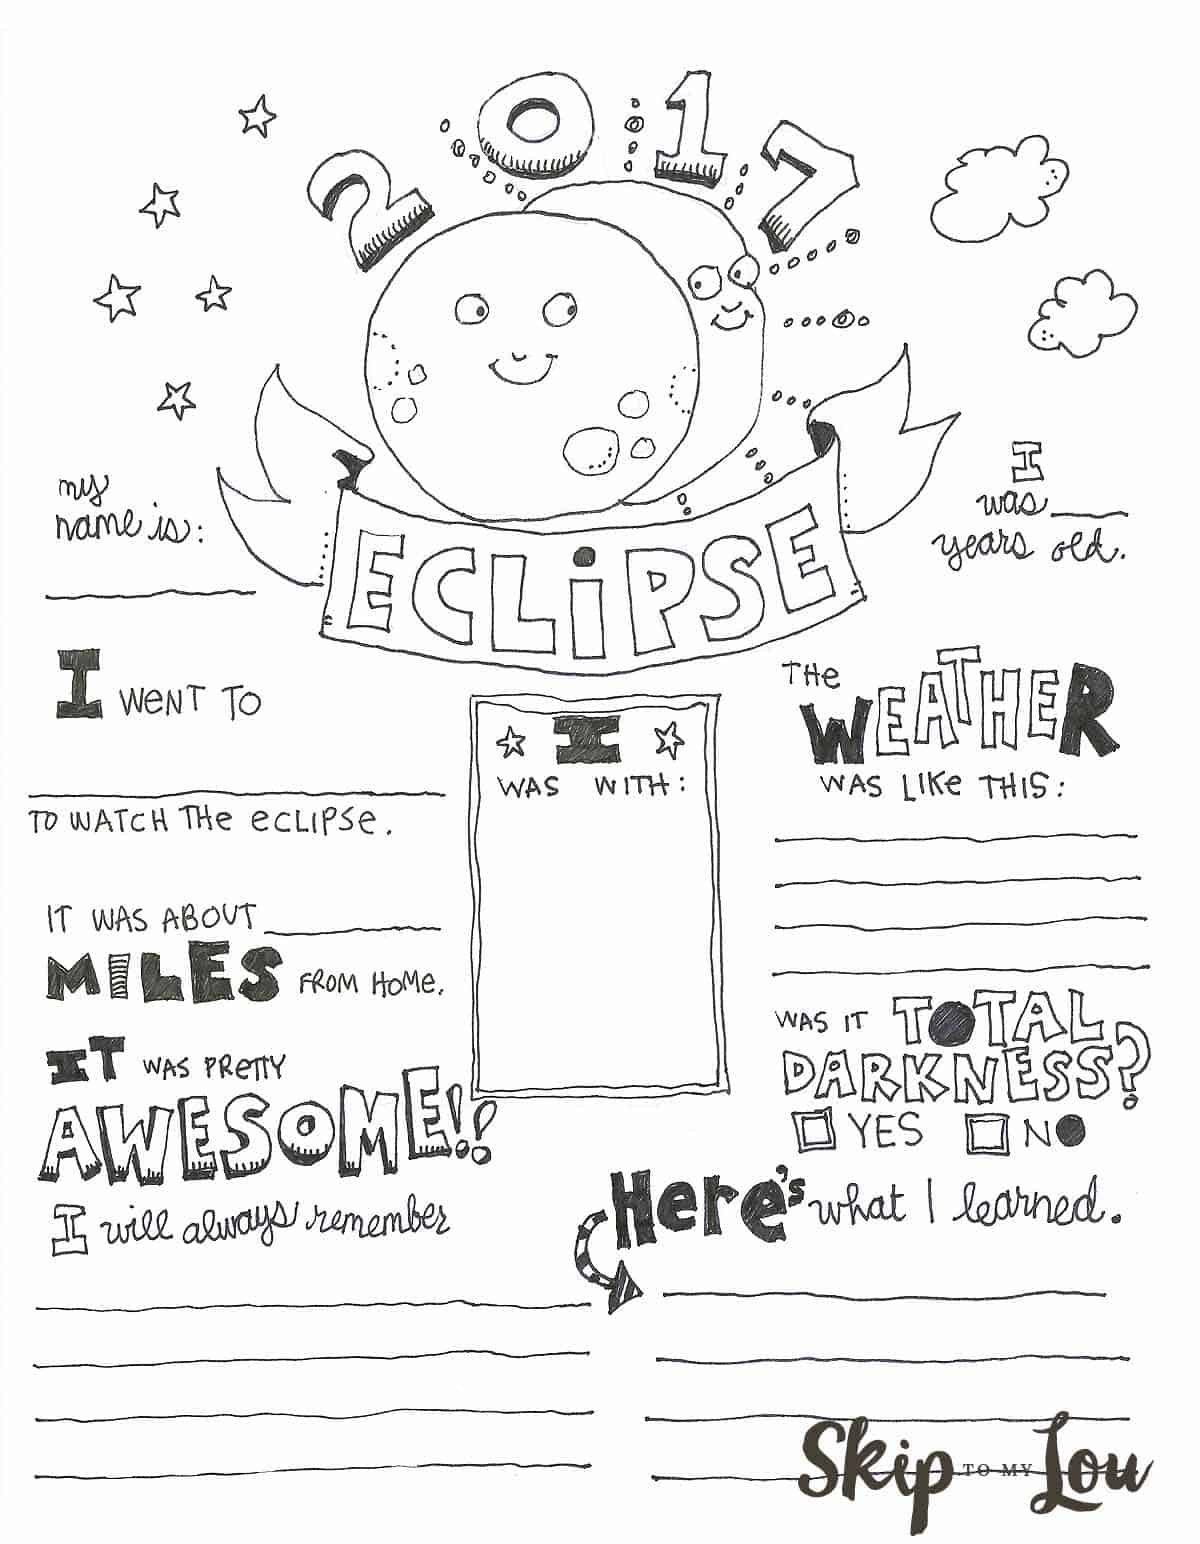 solar eclipse coloring page solar eclipse coloring page skip to my lou